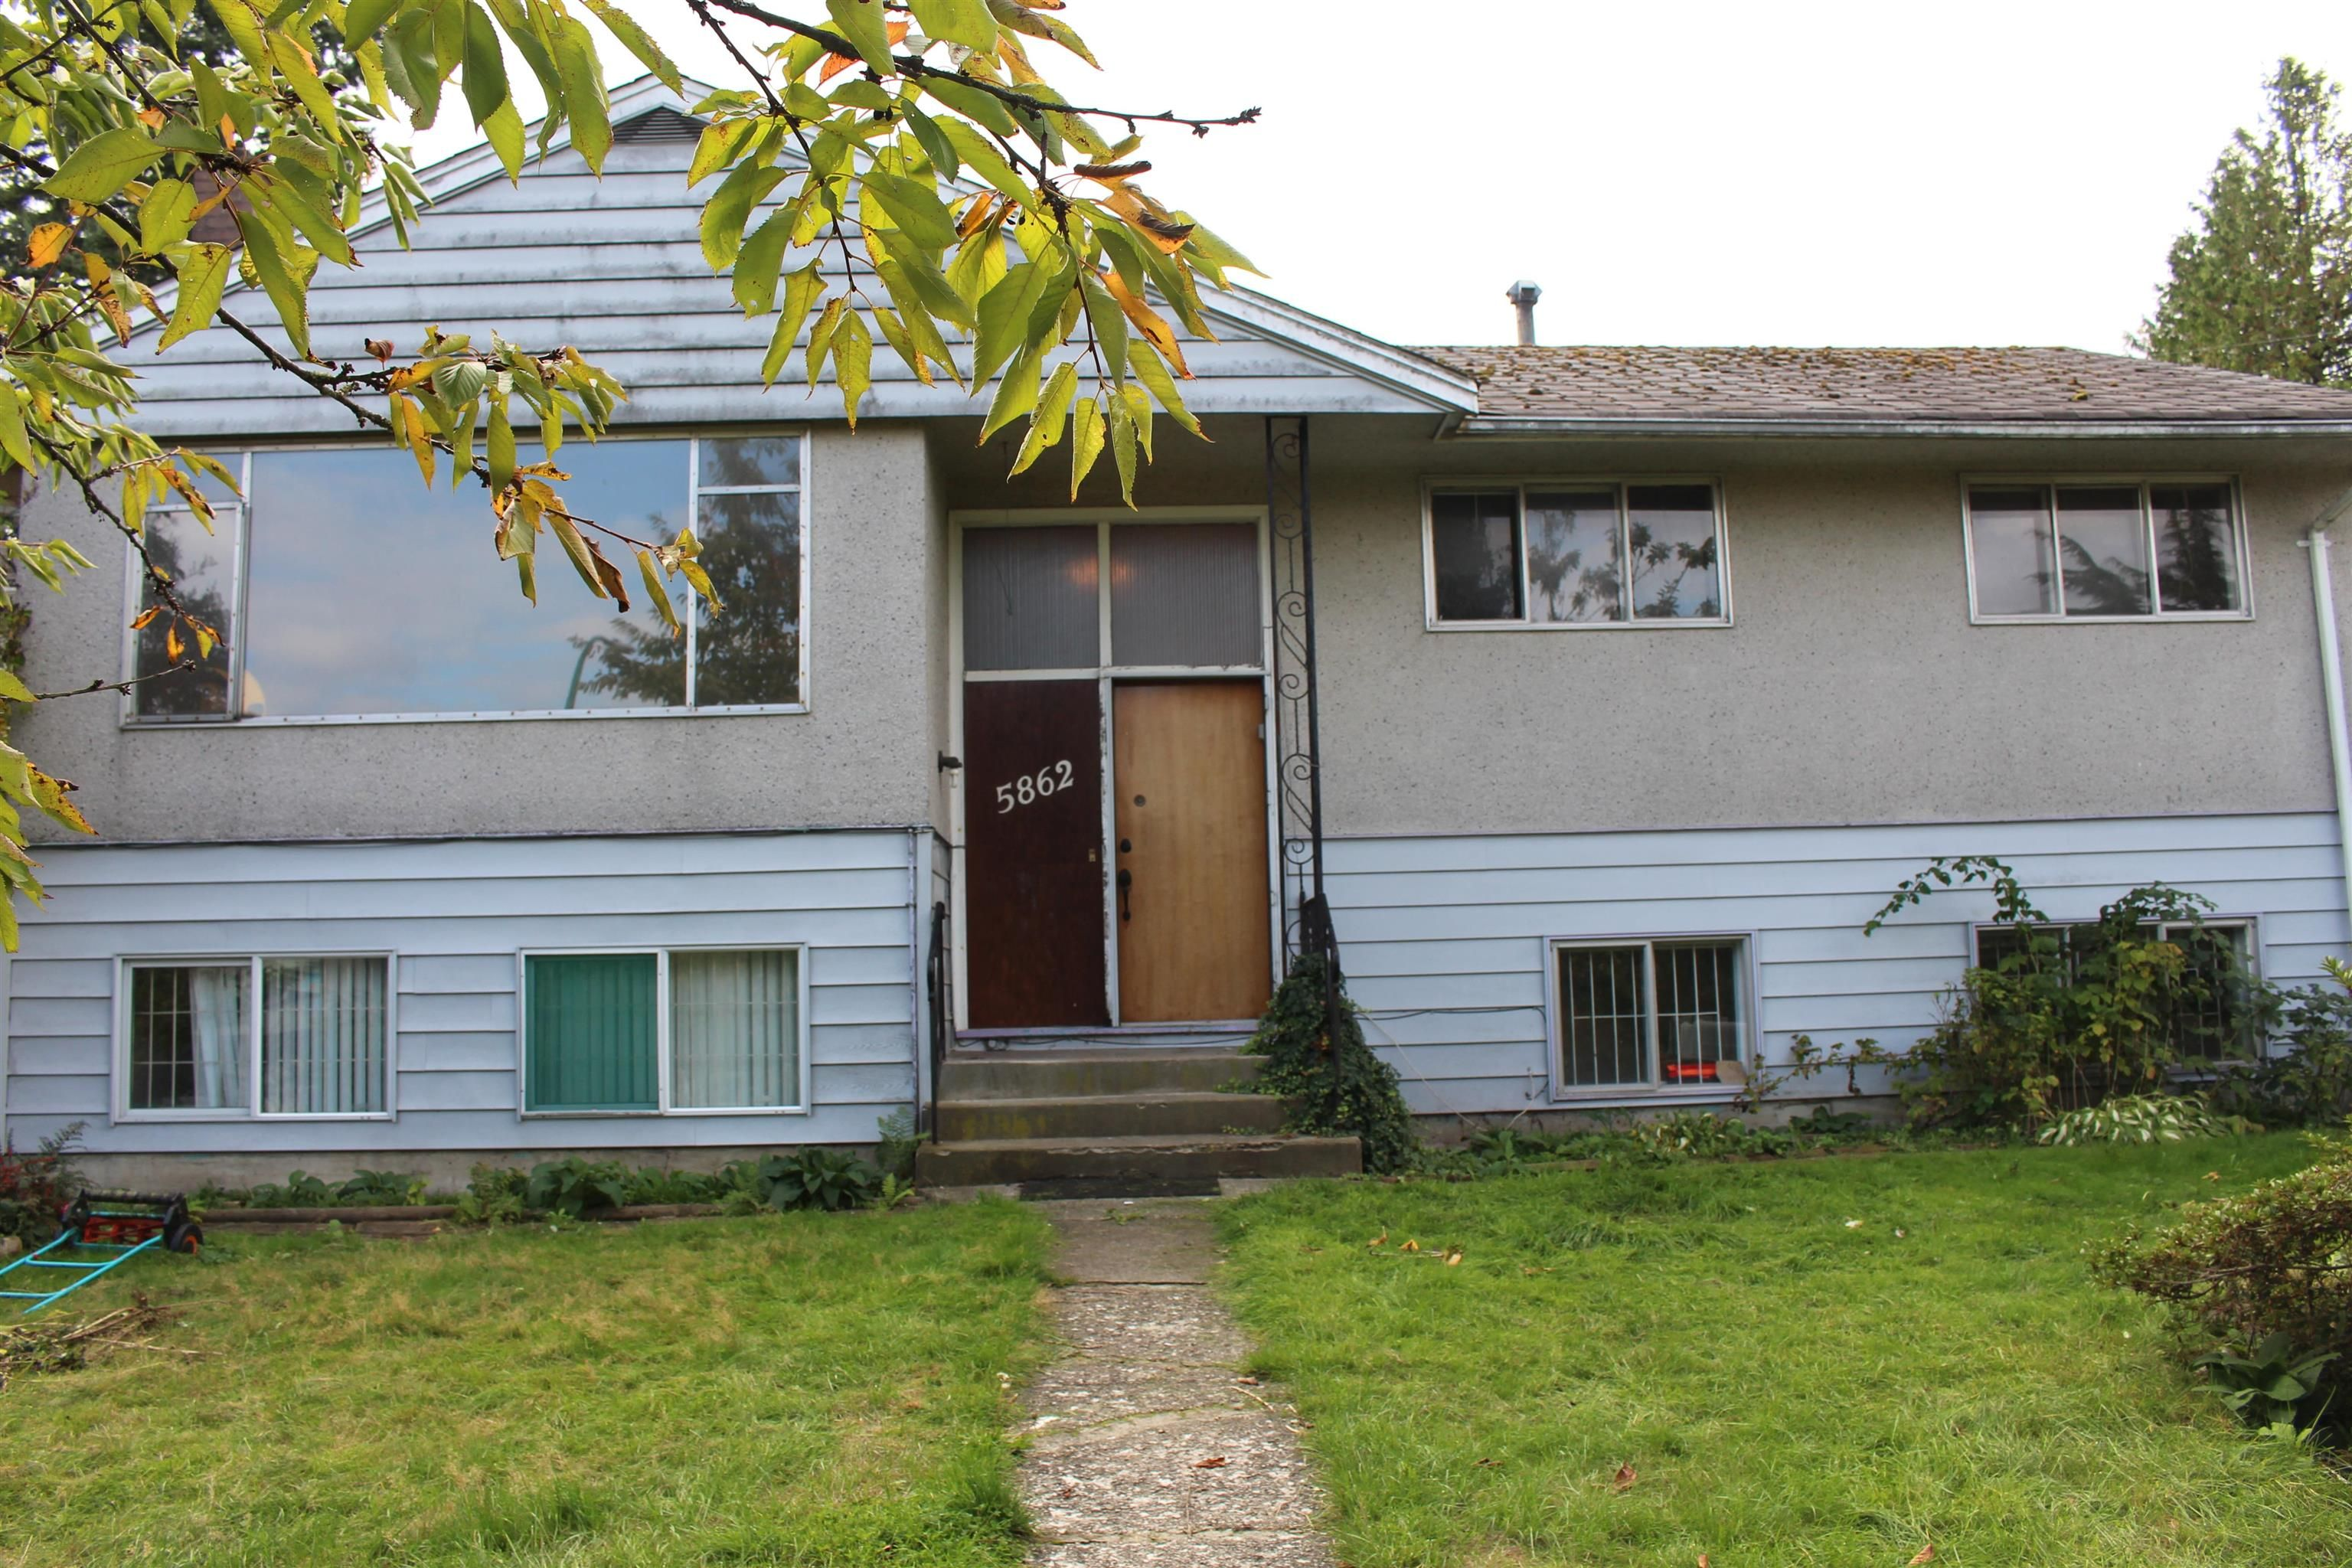 Main Photo: 5862 DICKENS Place in Burnaby: Upper Deer Lake House for sale (Burnaby South)  : MLS®# R2623971